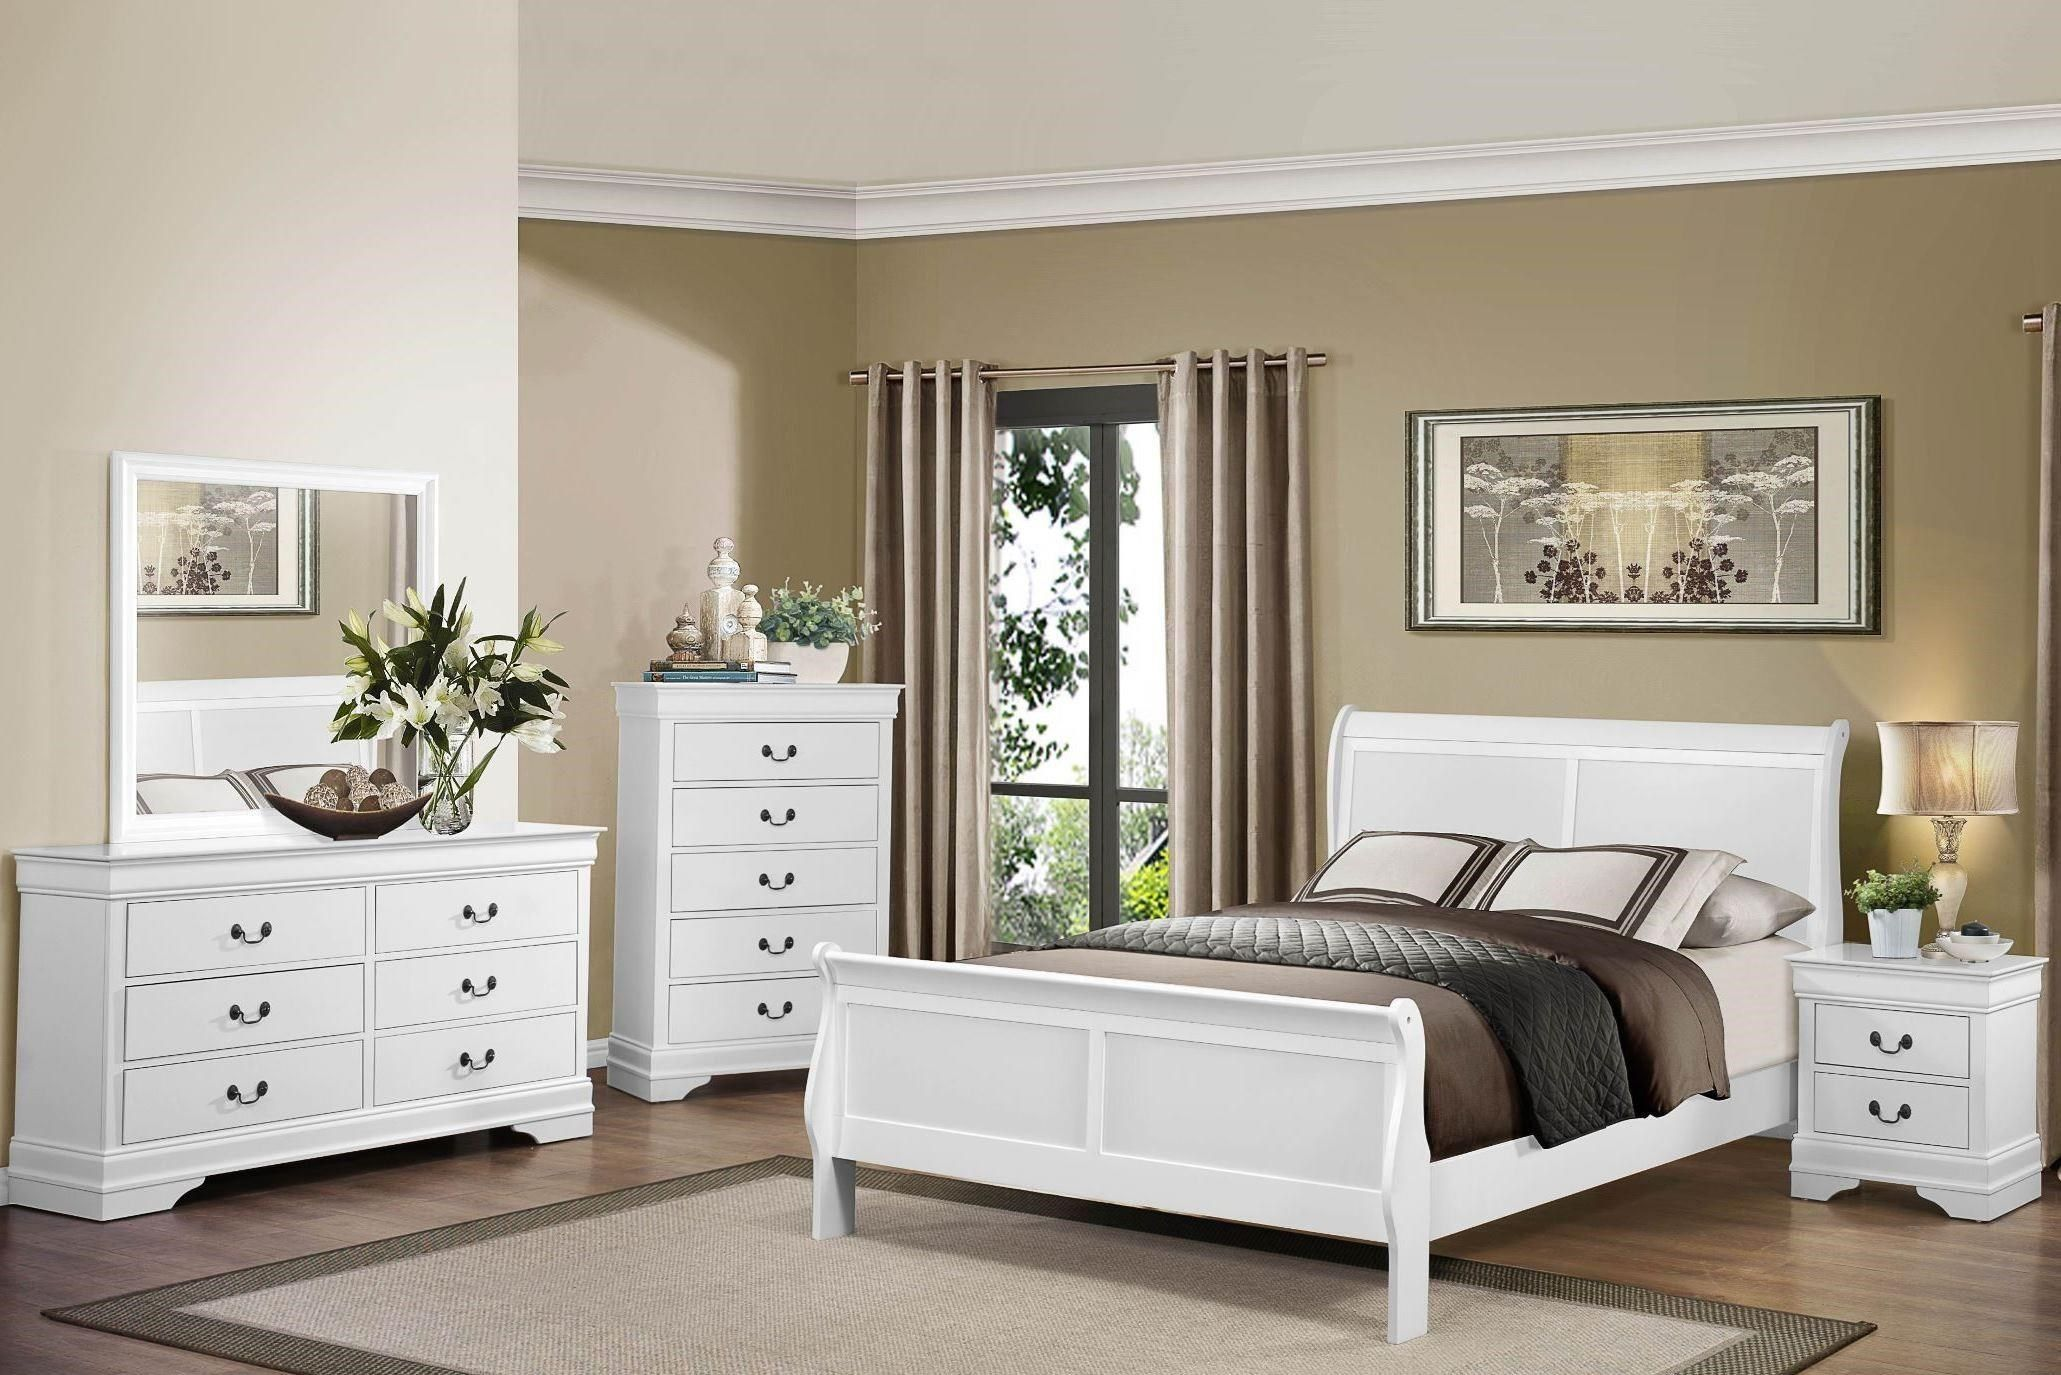 Mayville Queen White Bedroom Group By Homelegance At Great American Home Store Bedroom Sets Queen Bedroom Sets Furniture